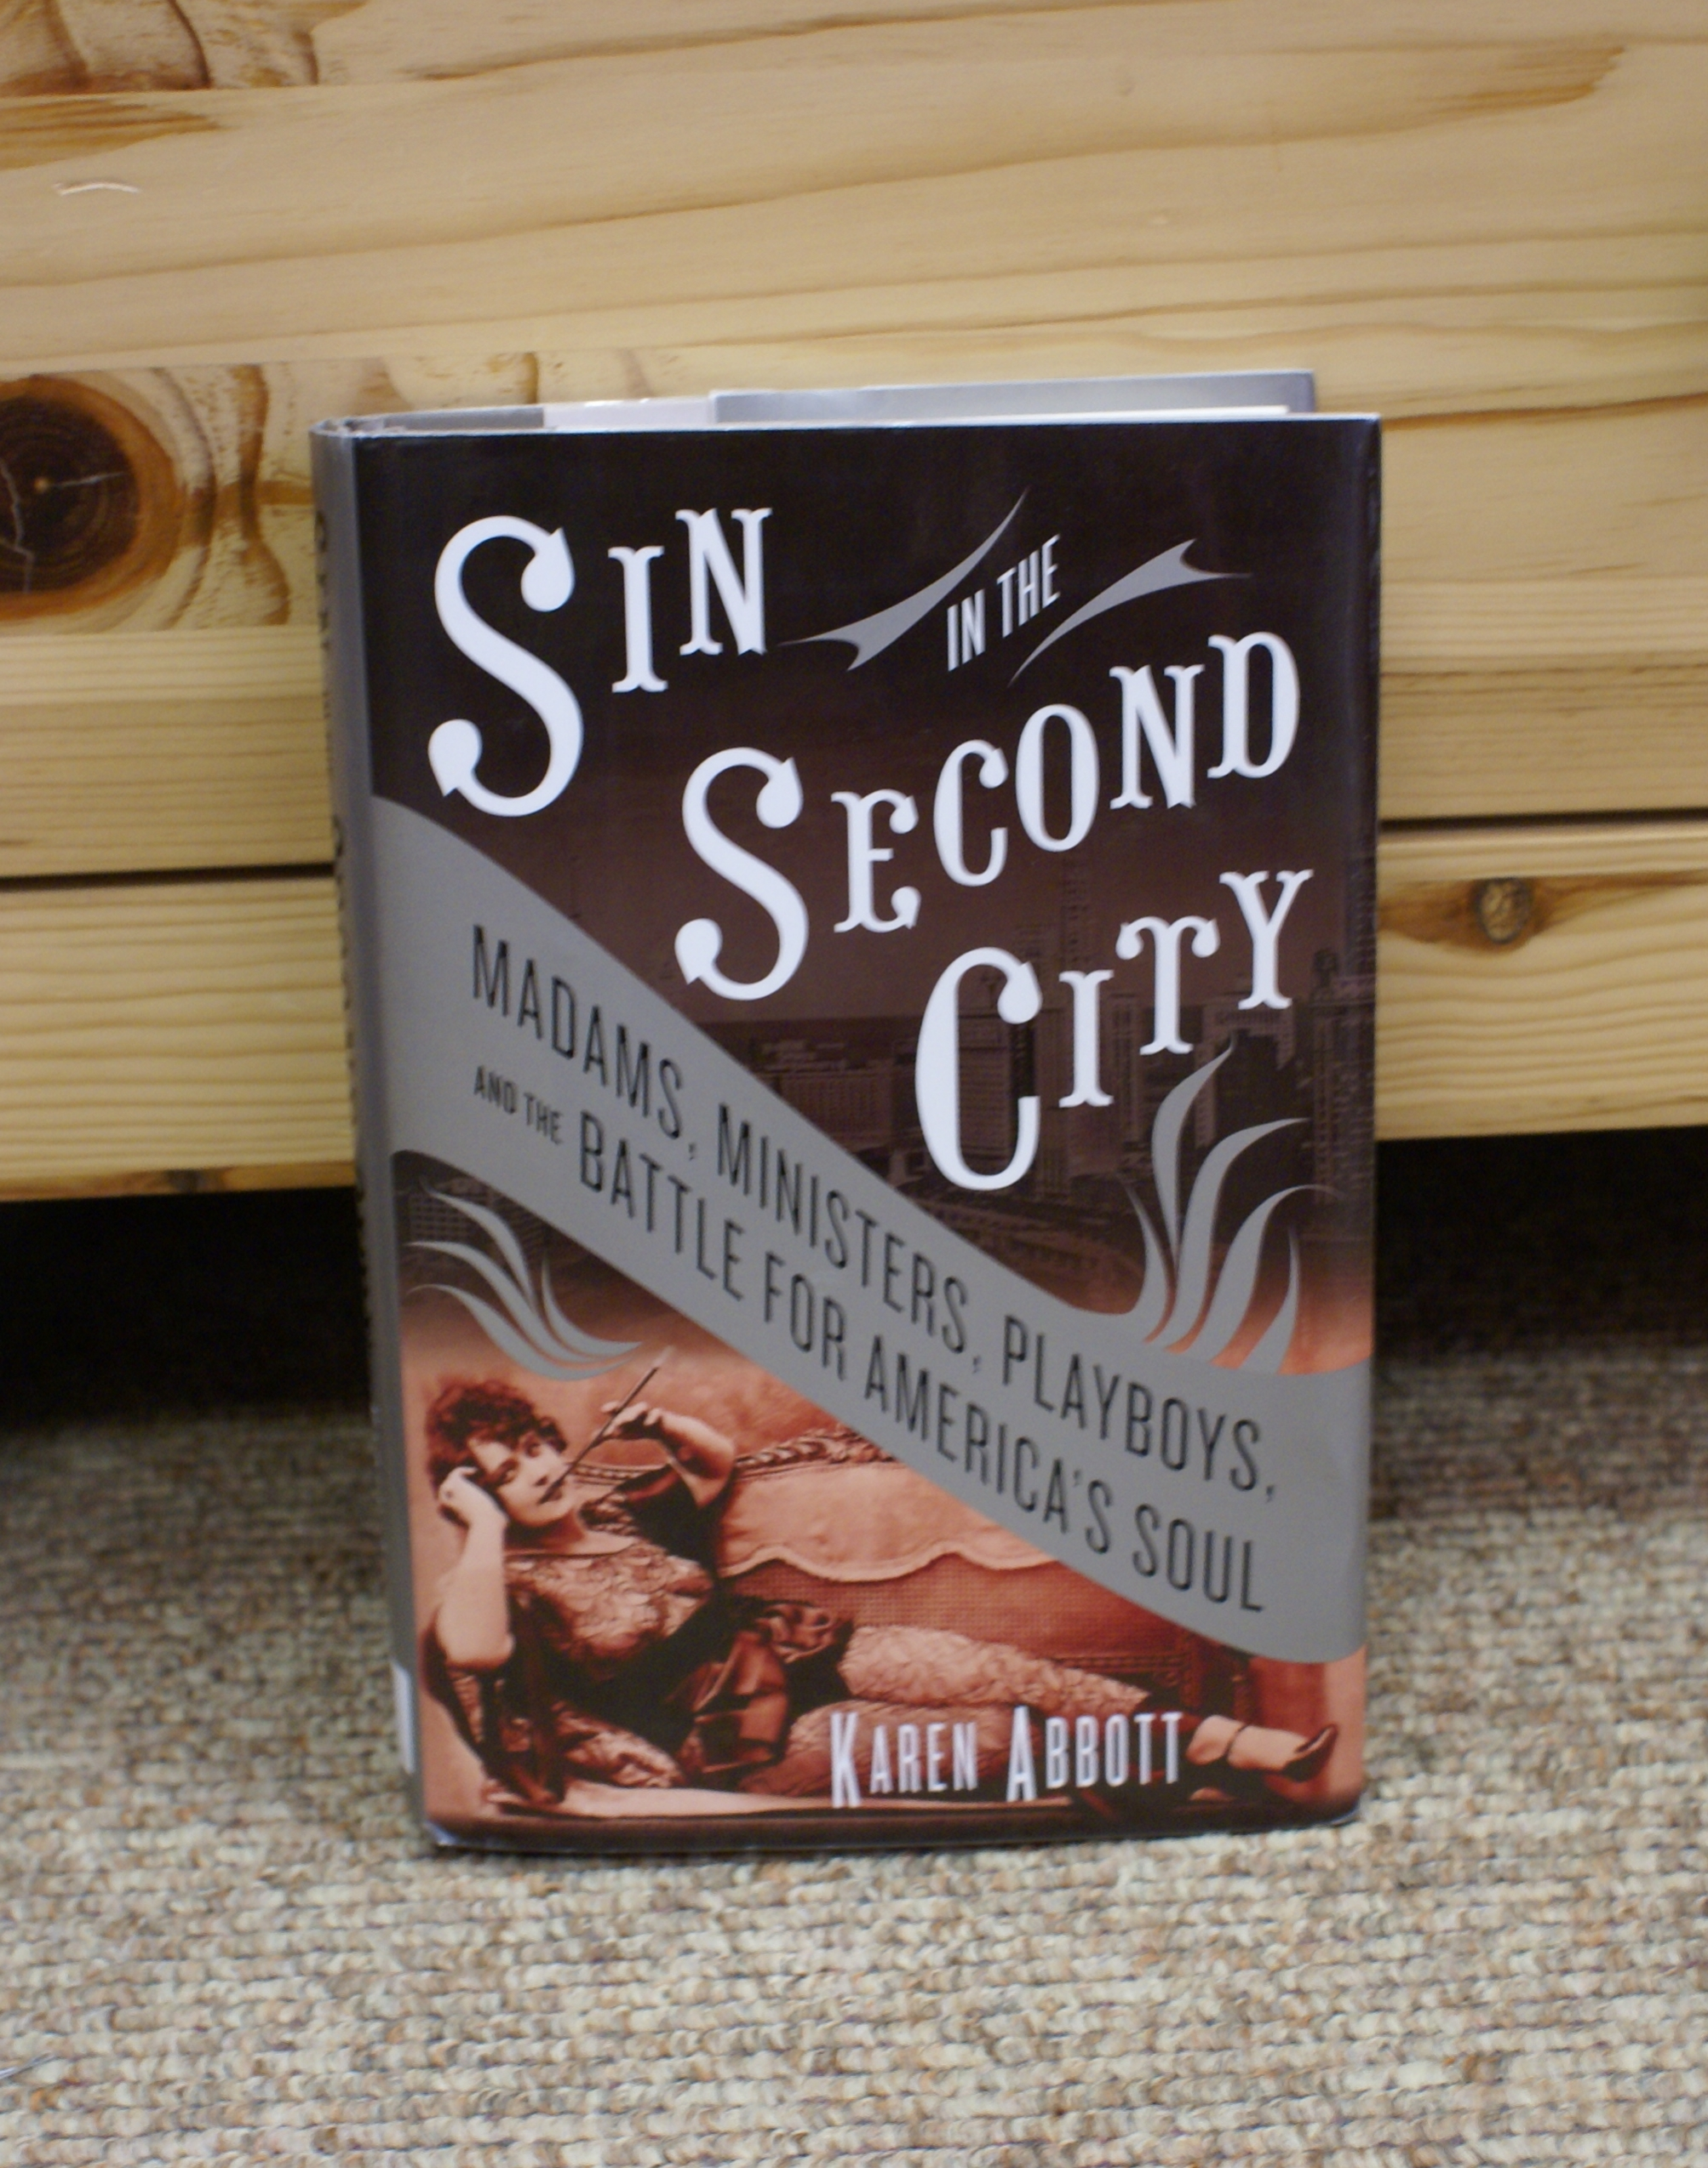 After a long cold winter, why not pick up a copy of  Sin in the Second City  and warm up? The History Center's choice of  Sin in the Second City  brings the book group back to Chicago with this sharp and popular history of morality, sexuality, and prostitution. Author Karen Abbott focuses on the Everleigh Club, a brothel on Dearborn Street.  Her success may stem from the general public's fascination with the seedy stories of history, and why not? Abbott's scope, though, includes an analysis of morality relative to time, gender, class, and locale. These elements make it much more than an exhibition of a sultry past. It is also a thoughtful consideration of the oldest profession in the context of twentieth century Chicago. The book will be discussed Wednesday, May 21, from 6-7 p.m. at the History Center.   And just so you know . . . Our book and Coffee Talk for July is Joe Kozenczak's  The Chicago Killer  about the John Wayne Gacy investigation. I had to set the book aside a couple times because Gacy's atrocity upset me. I chose this book because of the local connection and the fact that we could couple the book and Coffee Talk again. It is important to recognize and utilize firsthand information in doing history. Kozenczak was a valuable member of Des Plaines law enforcement for many years, and we are fortunate to be able to draw from his memories. —Philip Mohr